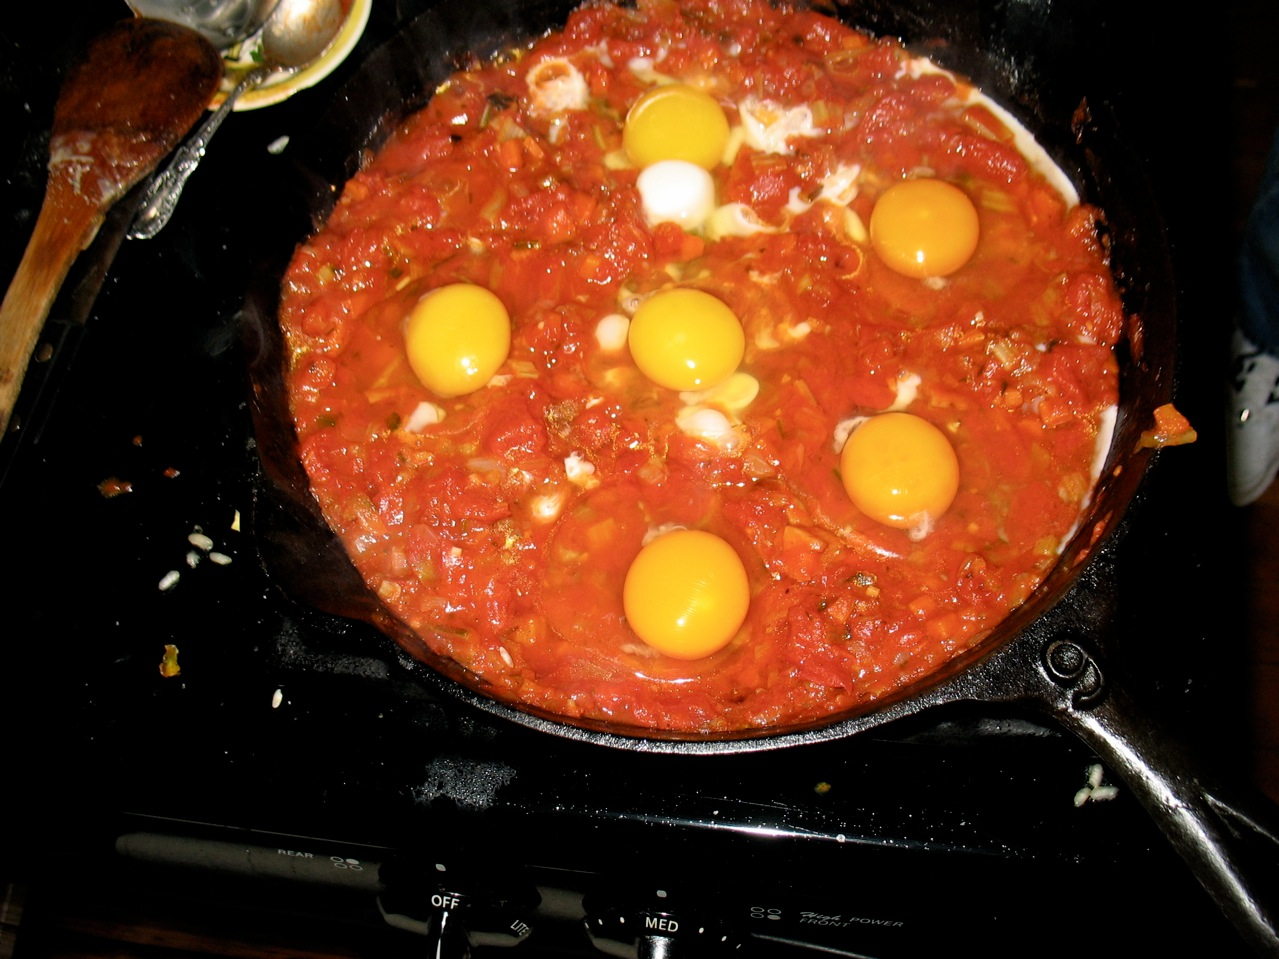 This is a standard Italian dish. If you have pre-made tomato sauce it takes mere minutes and if you have fresh tomatoes it doesn't take much longer to put together a quick sauce. Top the eggs with some grated parmesan towards the end for a fancier dish and be sure to have some good bread on hand to serve with this.